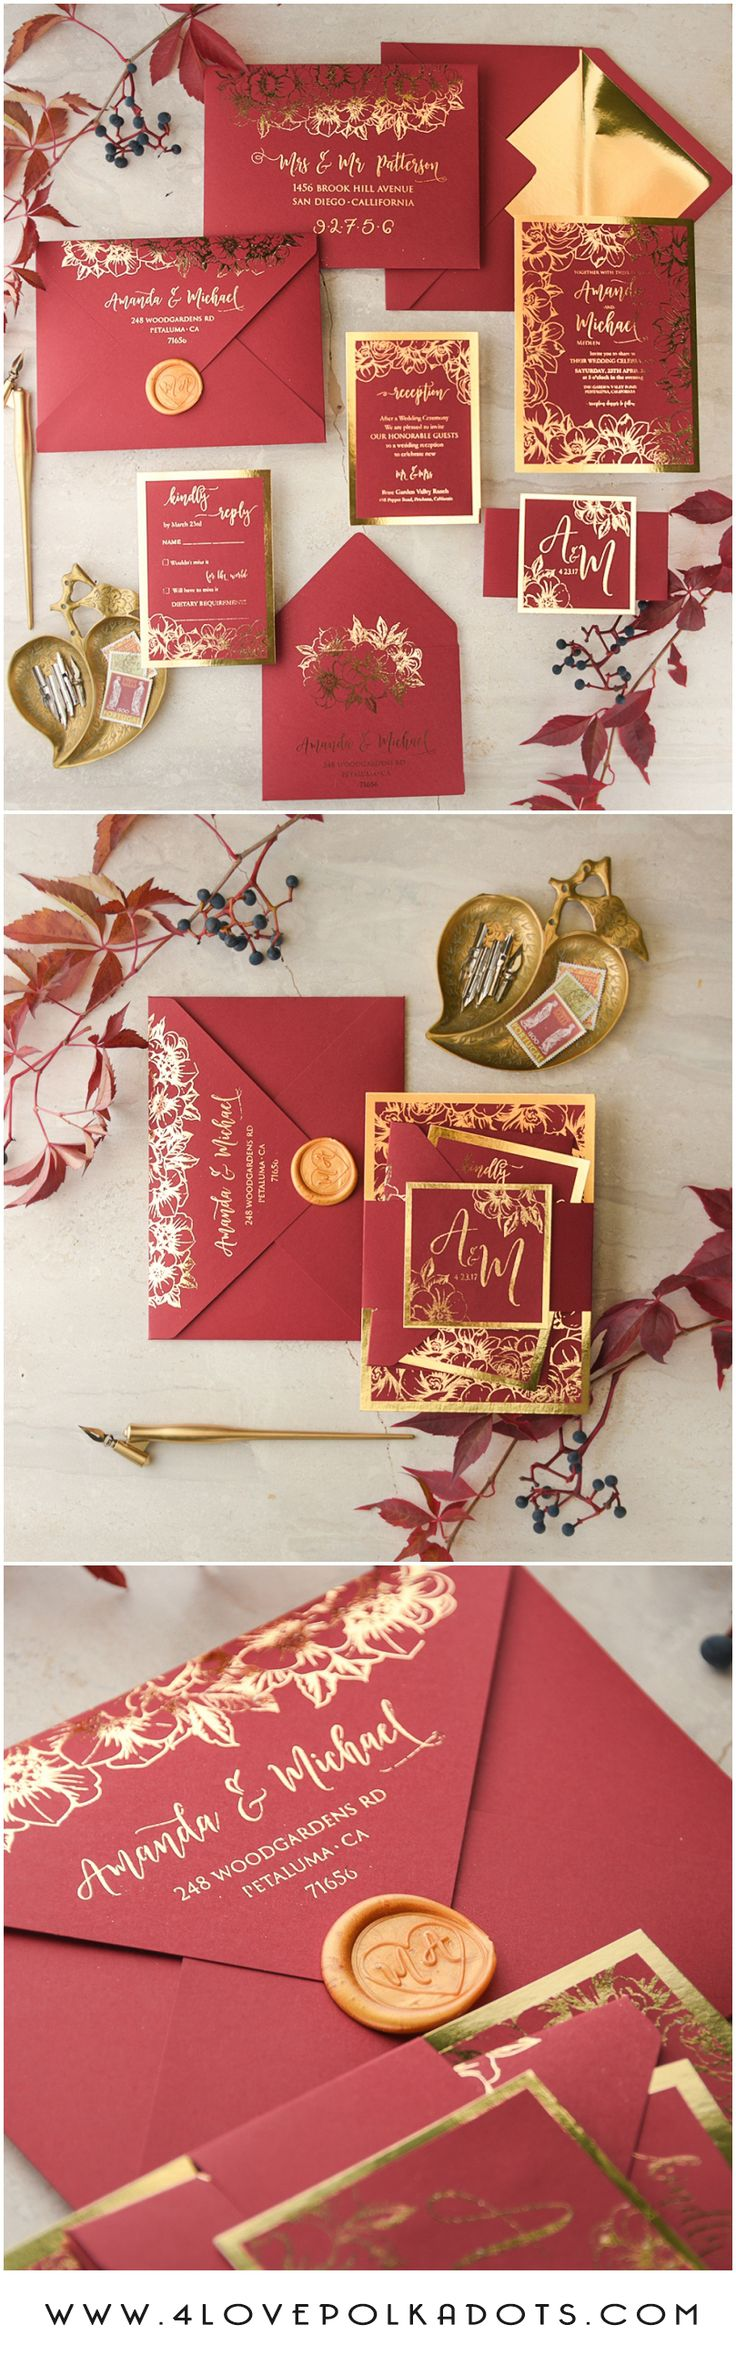 Marsala Red & Gold wedding invitations with gold foil and wax stamping – glam and shiny FTW!